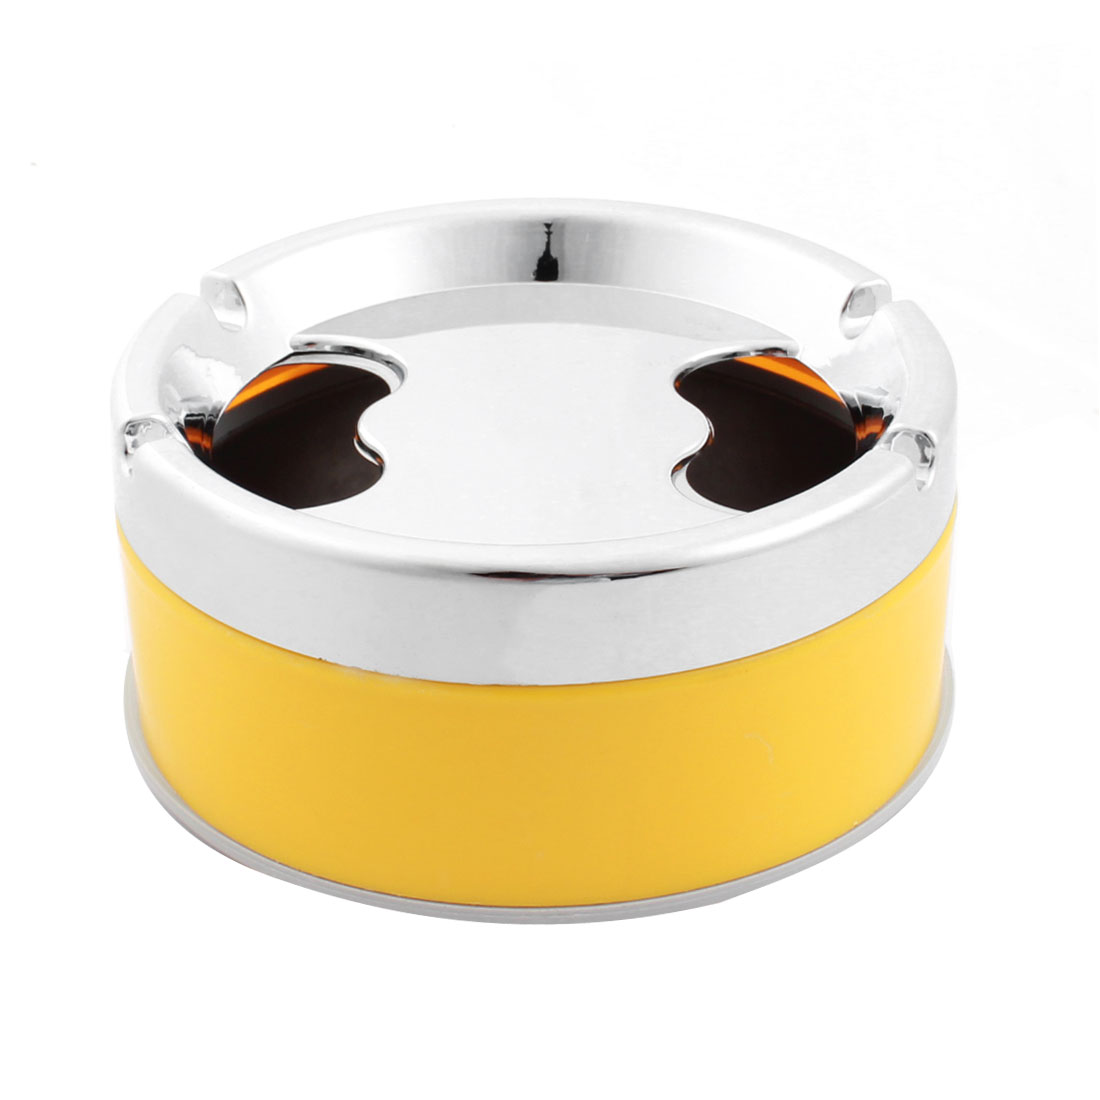 "Silver Tone Yellow Plastic Metal Cylinder Design 4.5"" Dia Cigarette Holder Smoking Ashtray"